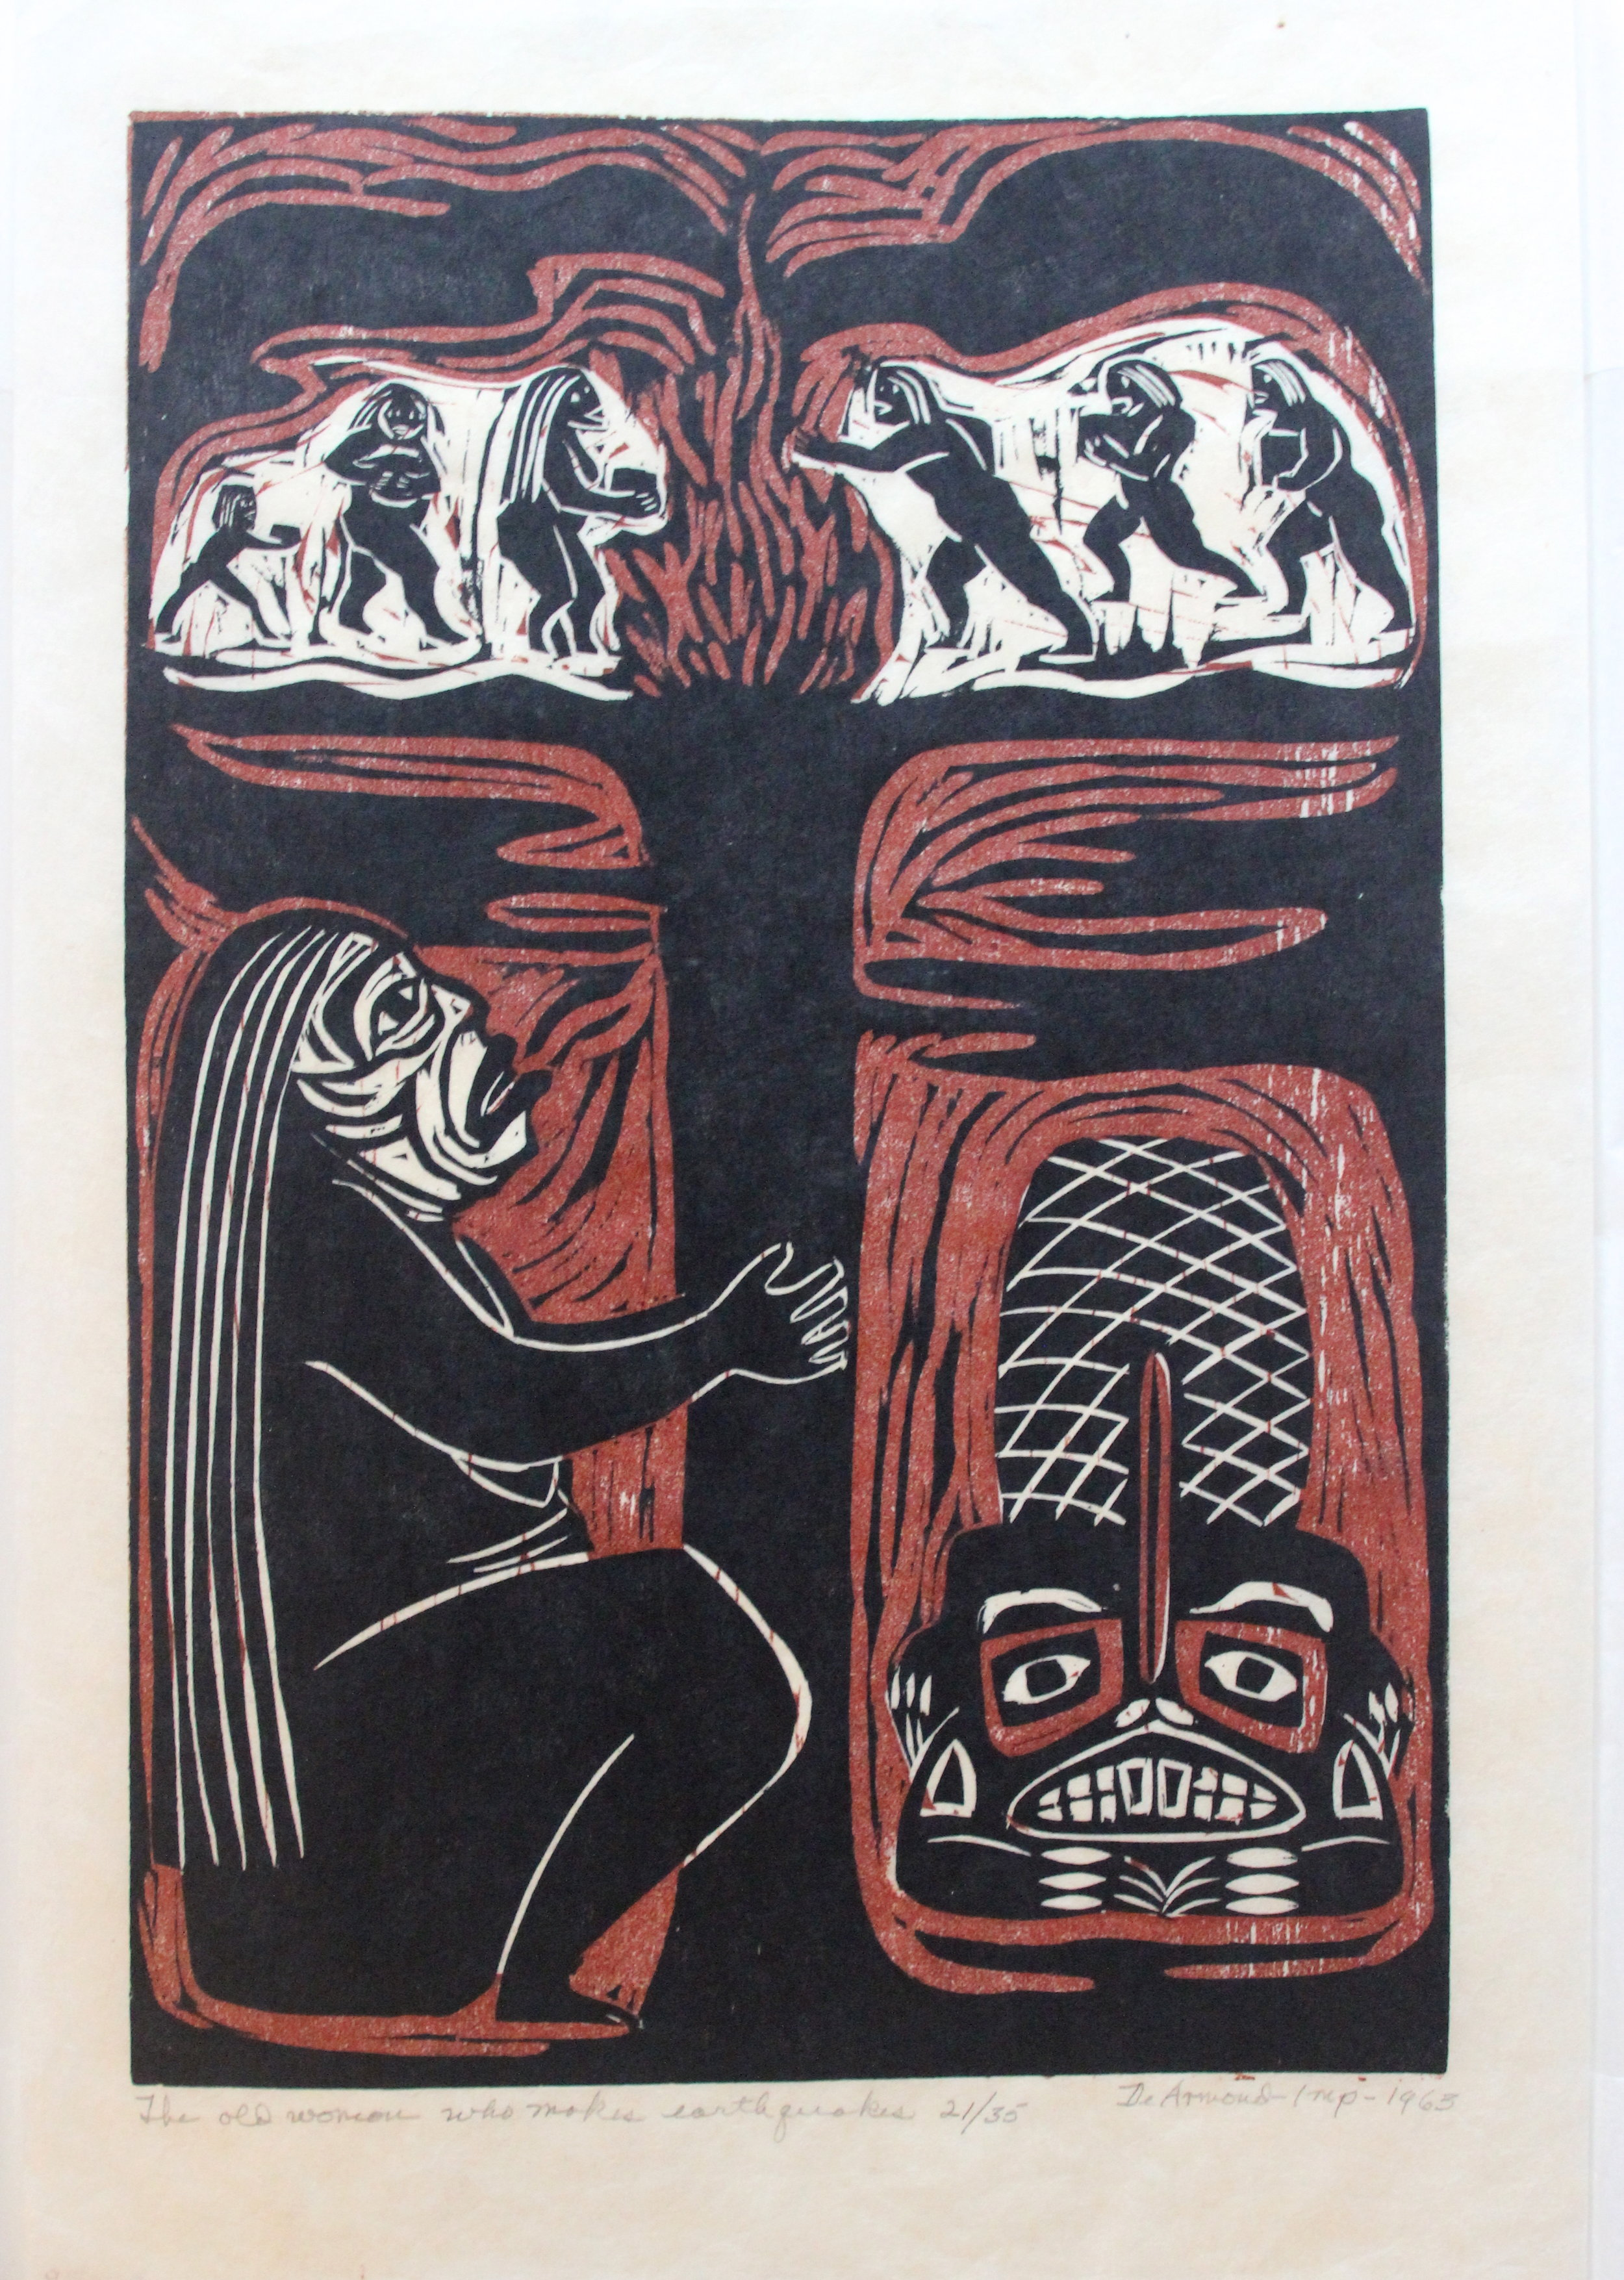 Dale DeArmond, The Old Woman Who Makes Earthquakes, 1965